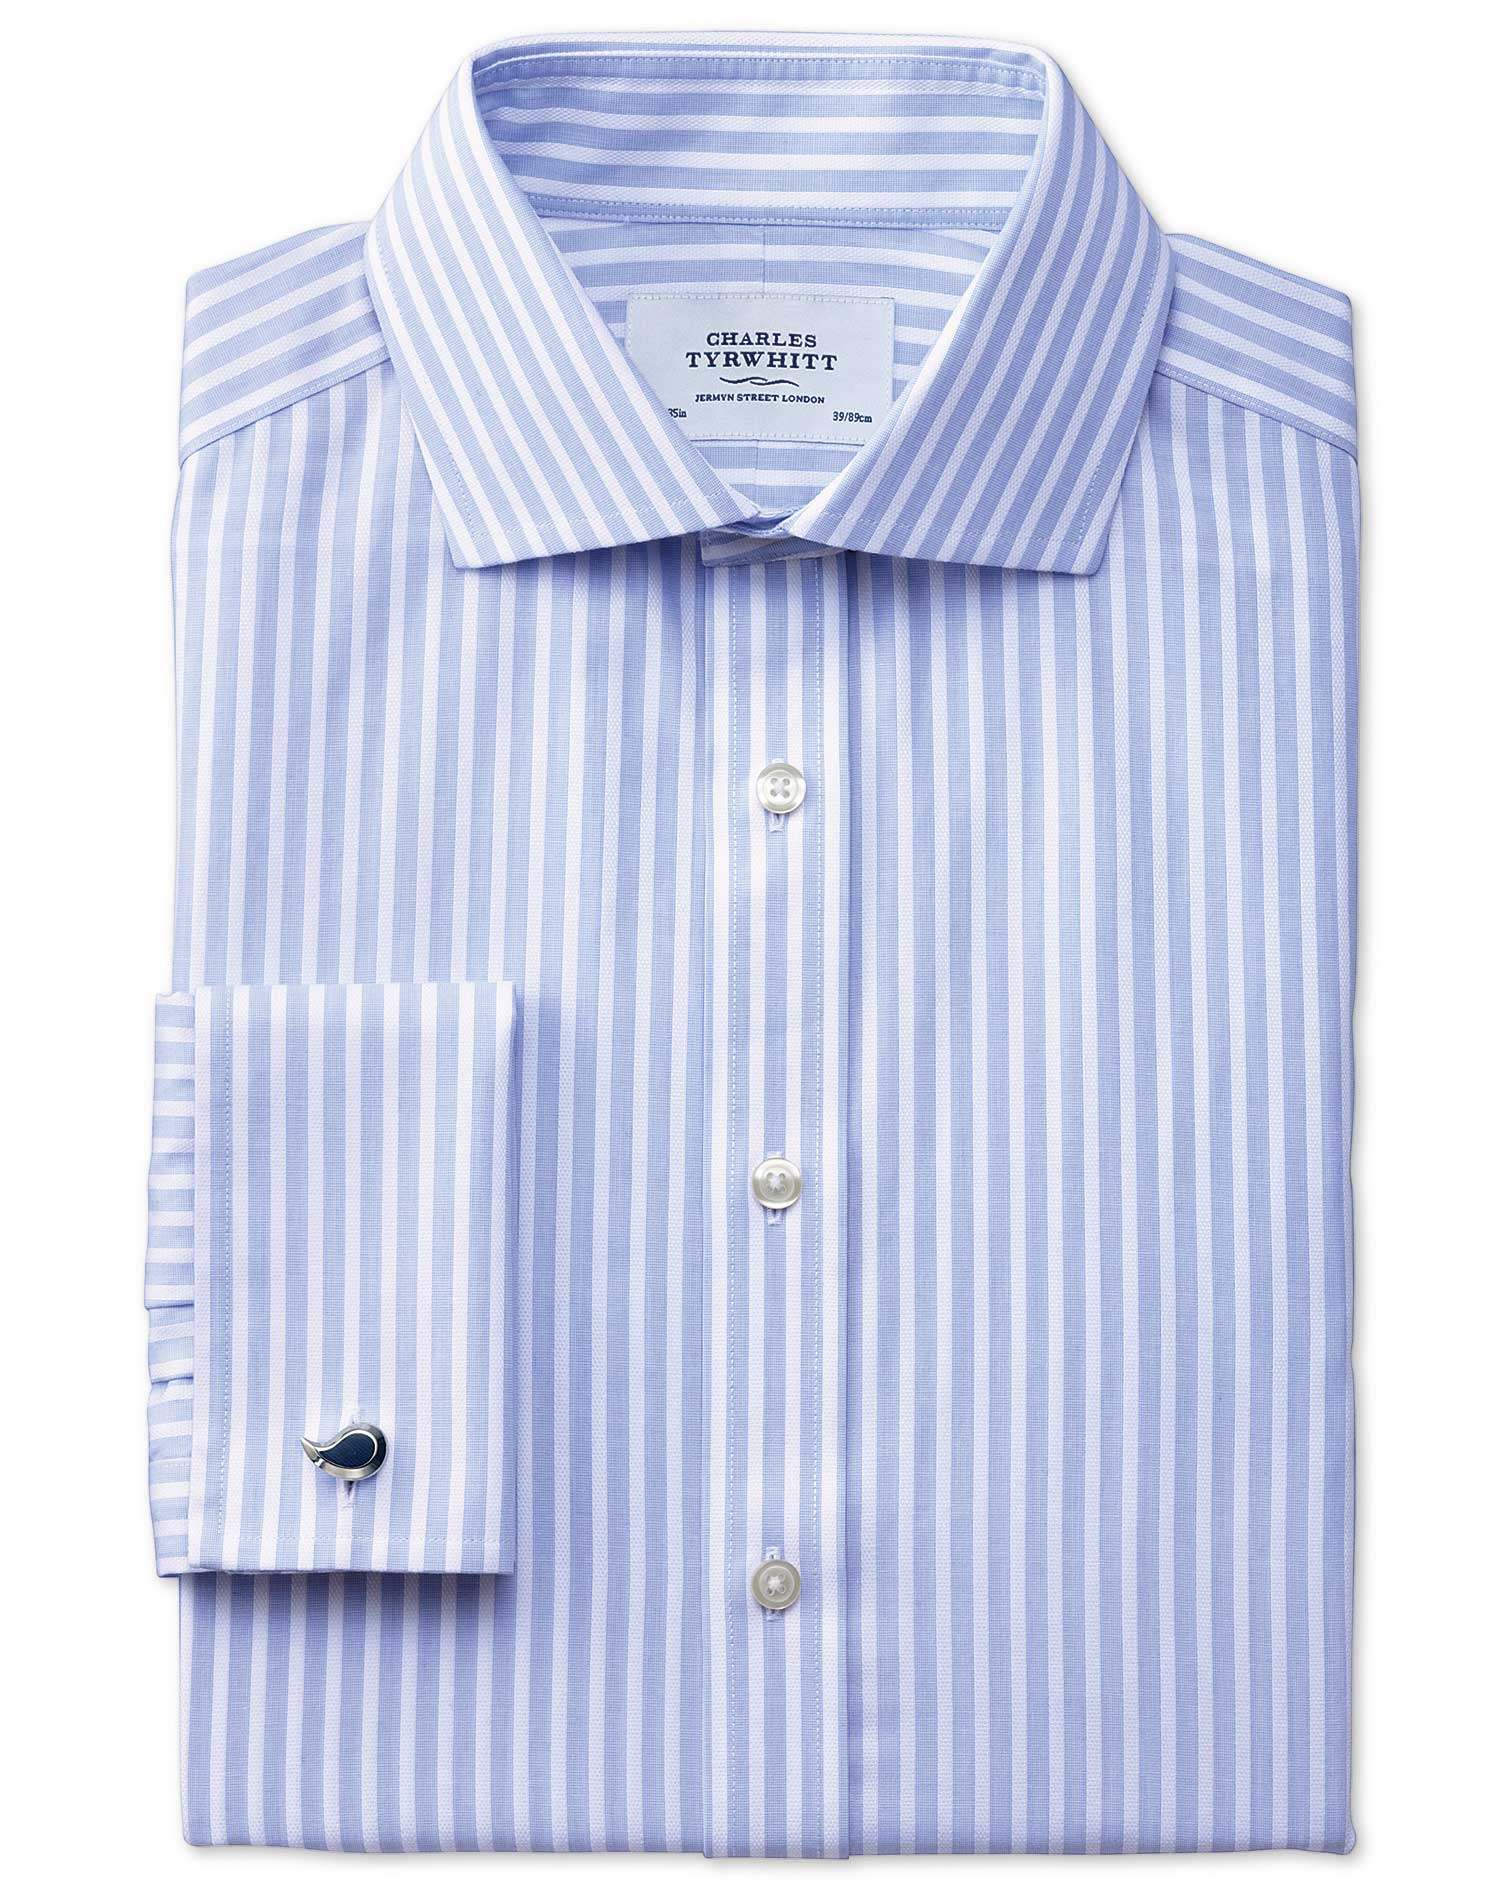 Slim Fit Cutaway Collar Non-Iron Stripe White and Sky Blue Cotton Formal Shirt Single Cuff Size 14.5